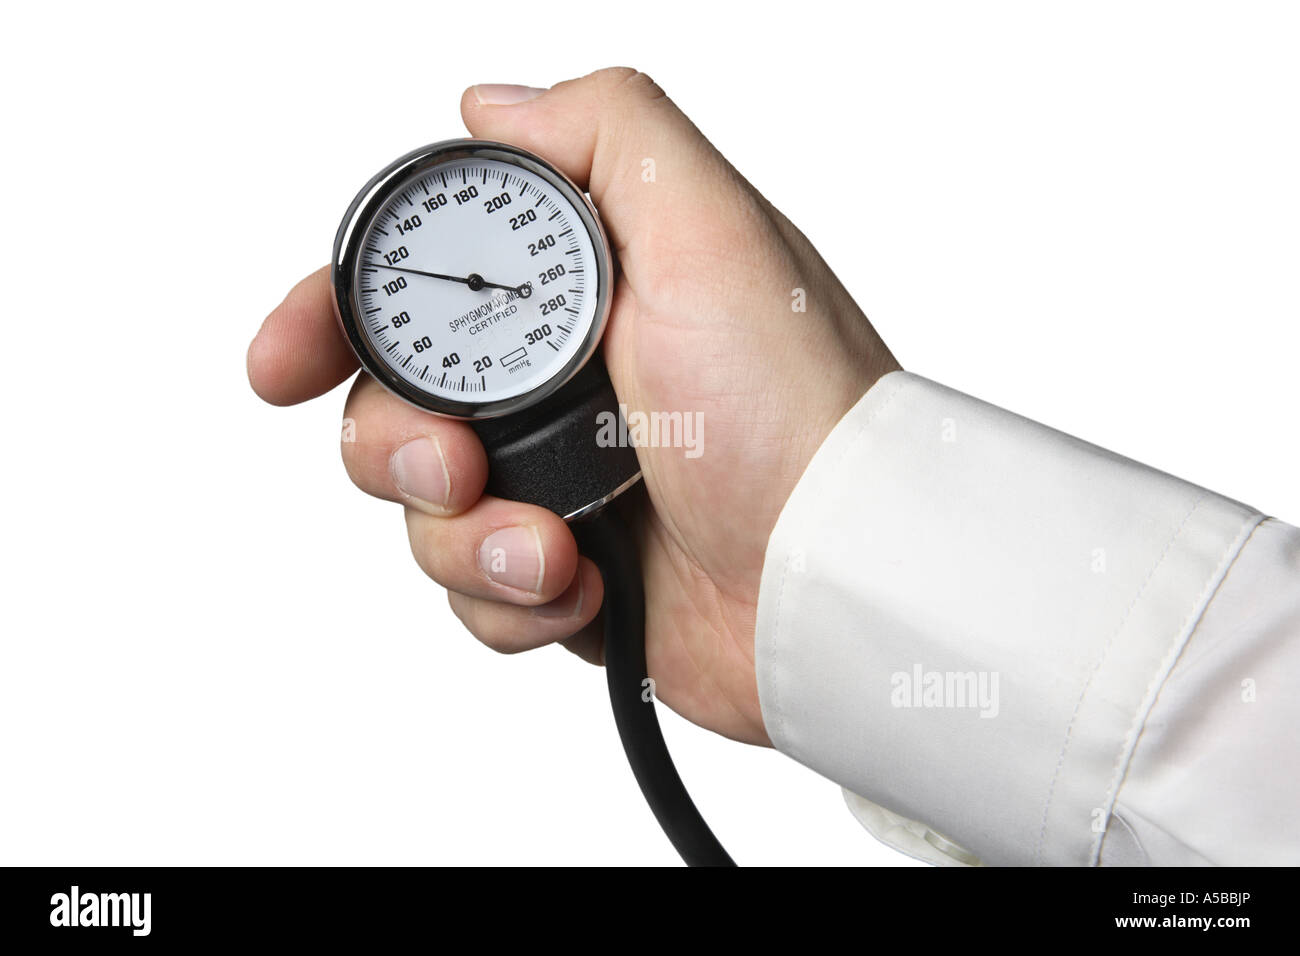 Hand holding blood pressure gauge cut out on white background - Stock Image